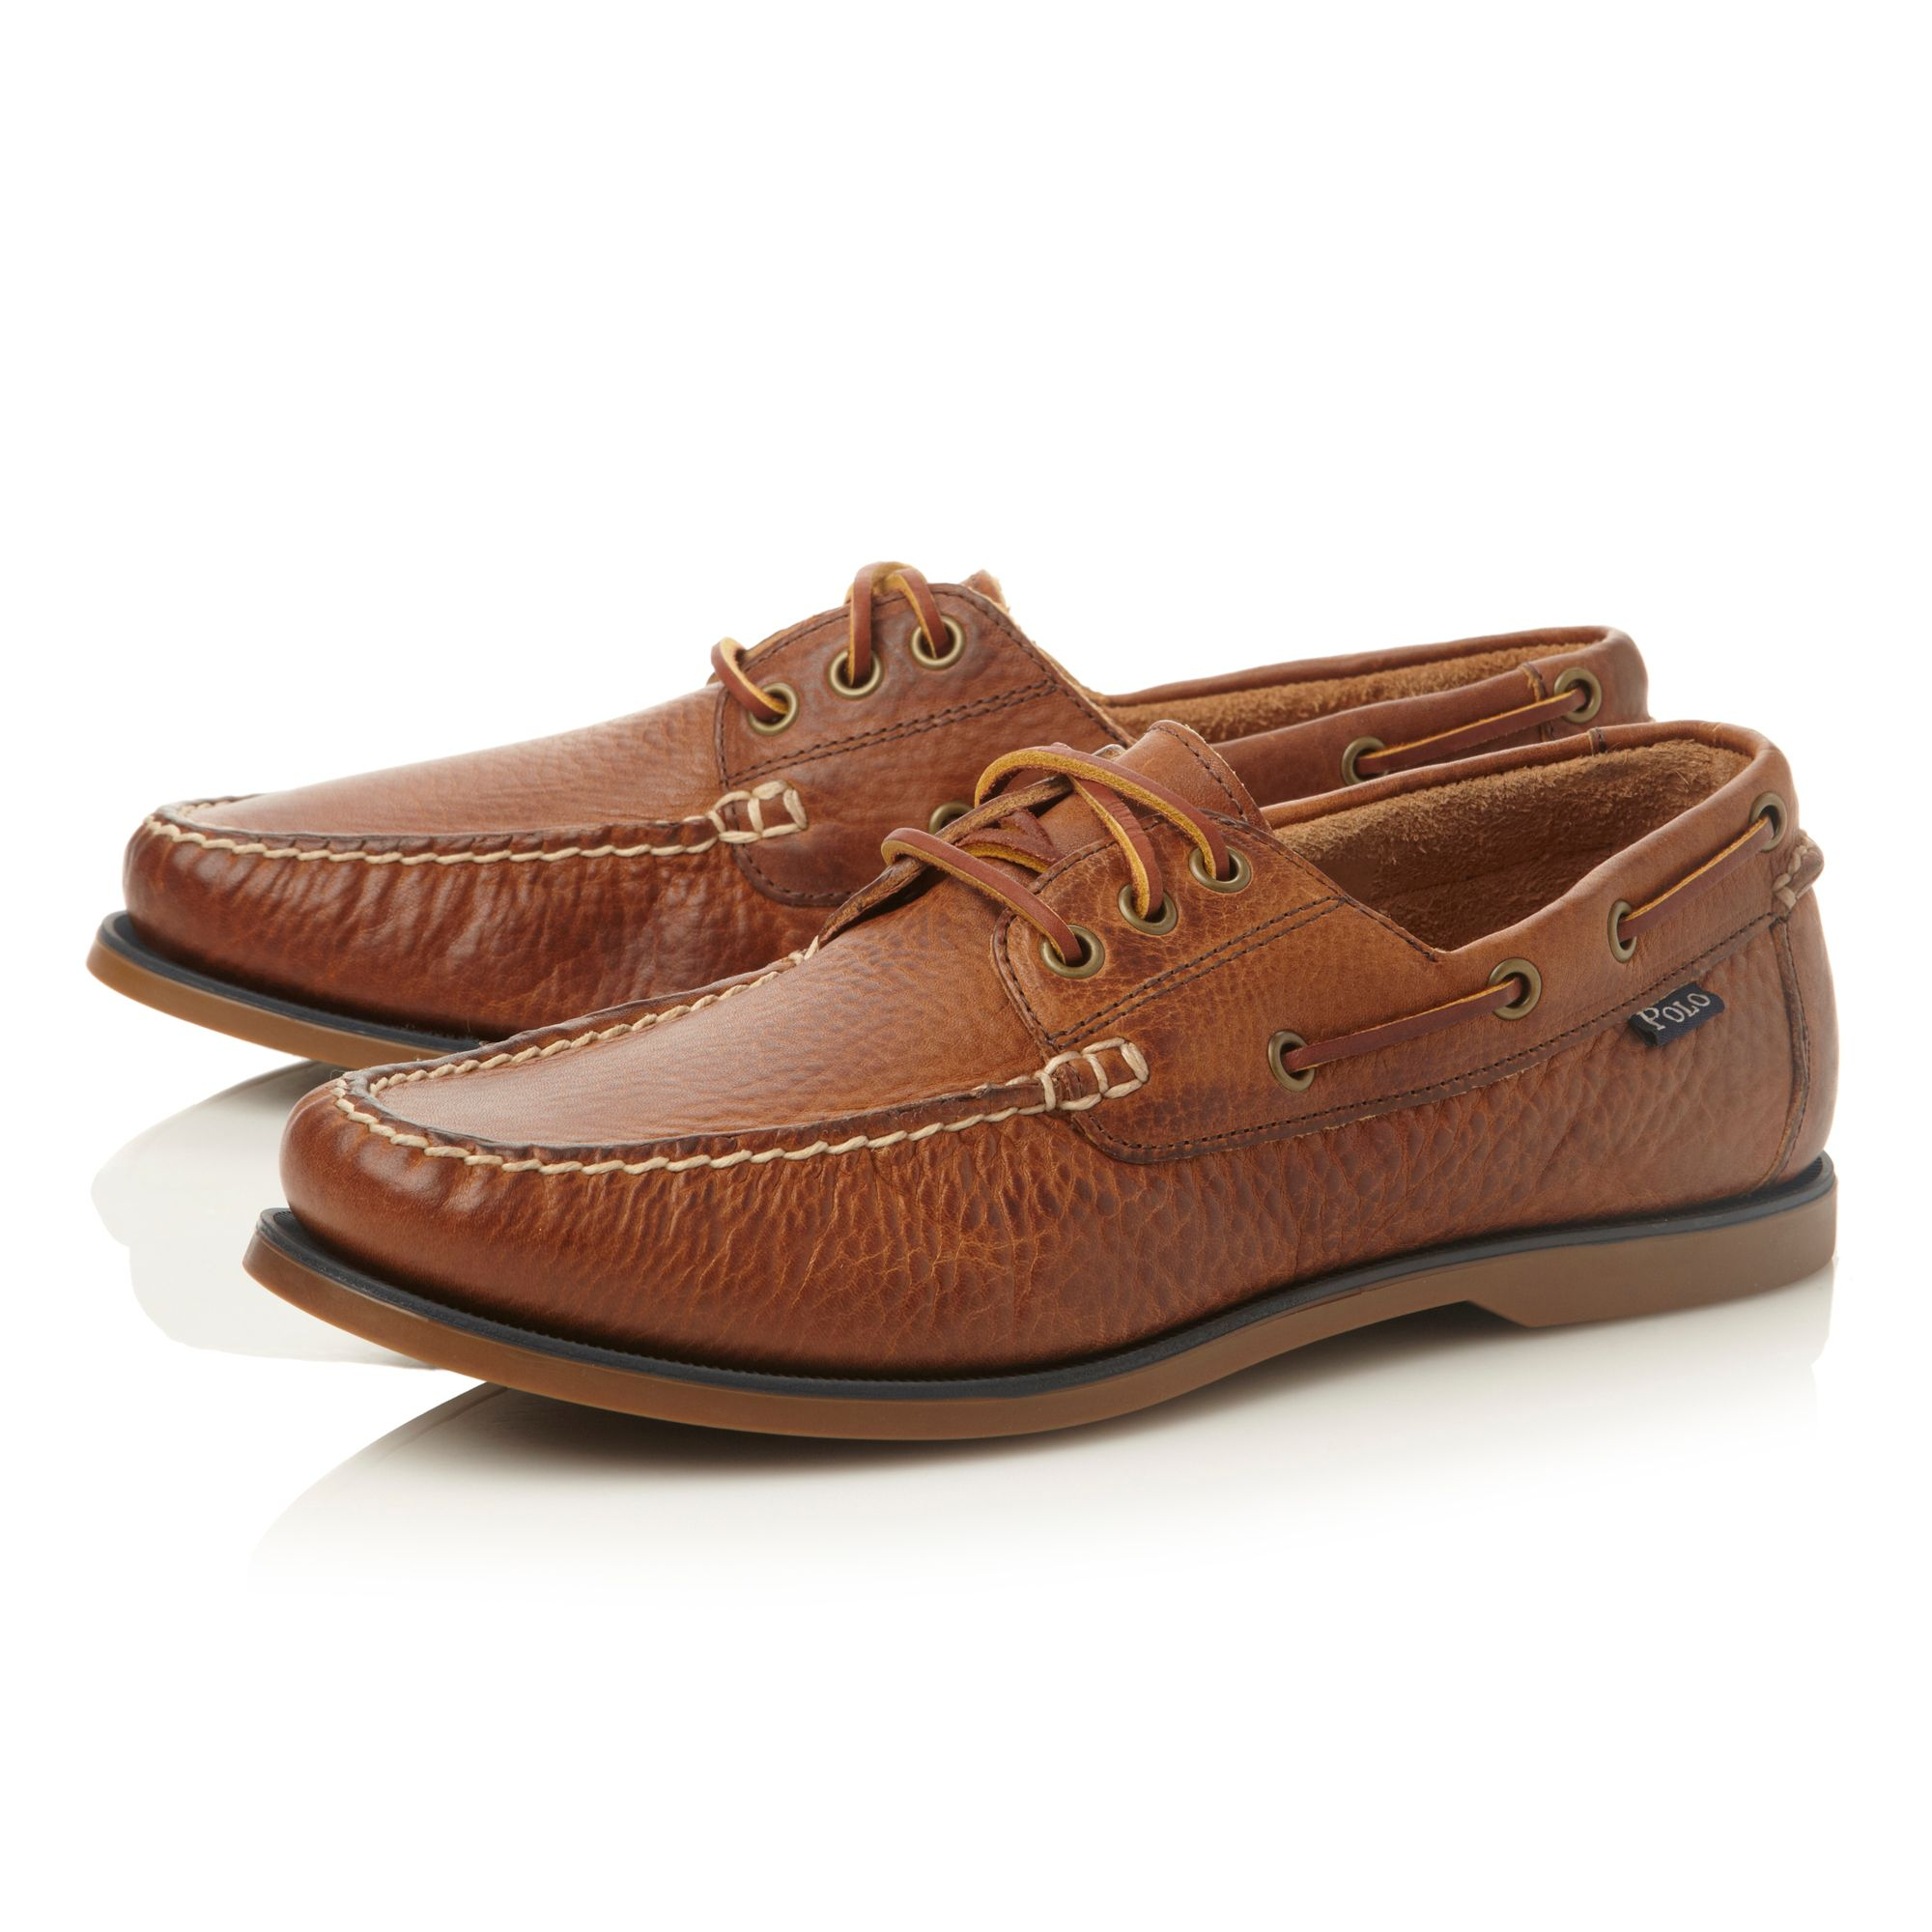 Leather Polo Boat Shoes